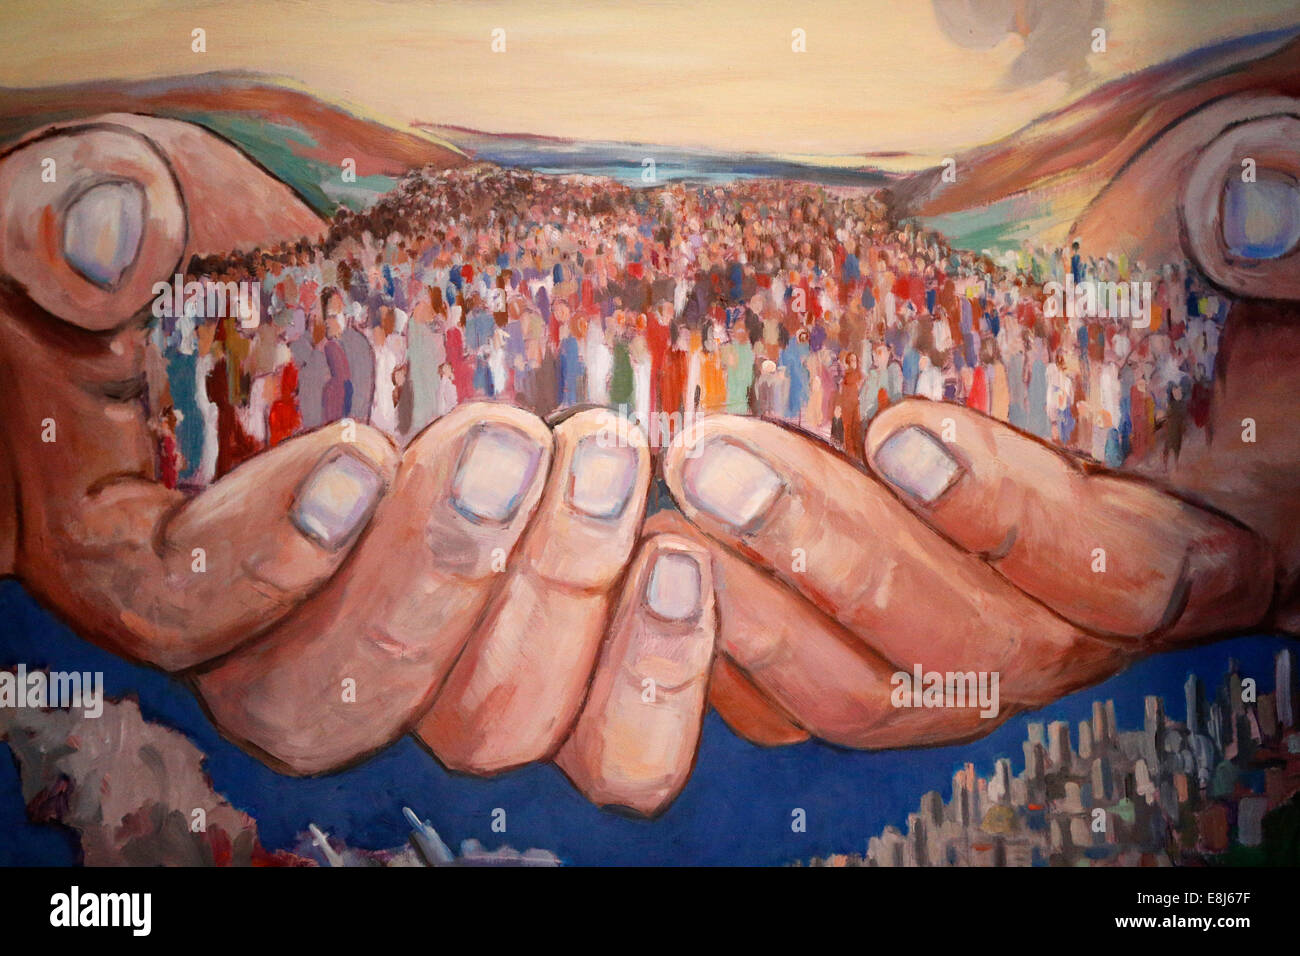 Depiction of the people of God. - Stock Image